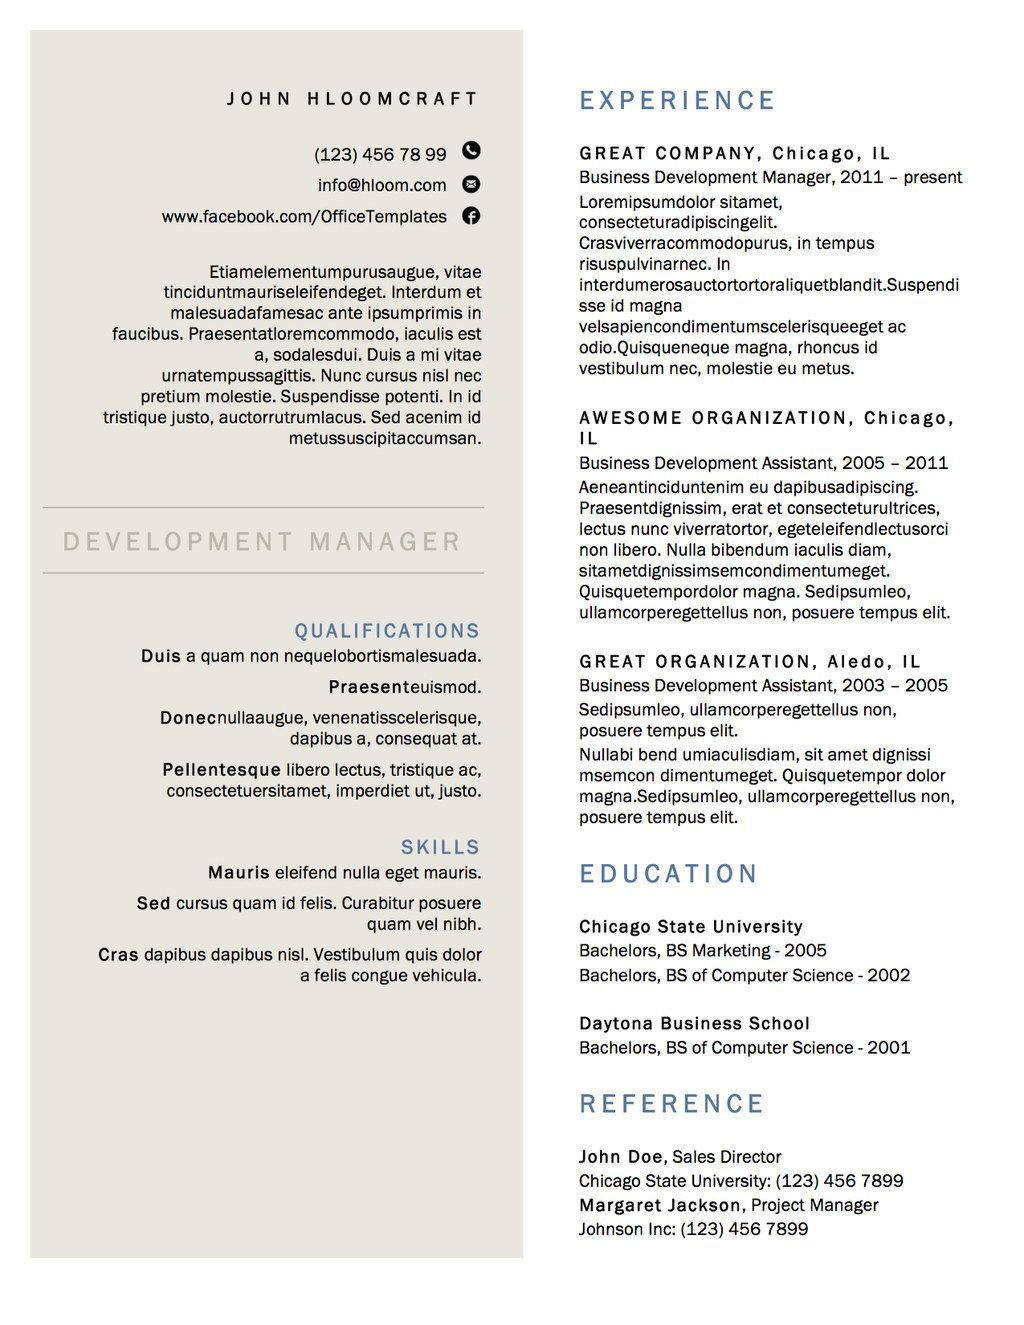 Pin by My Career Plans© on Build a Resume template in 2020